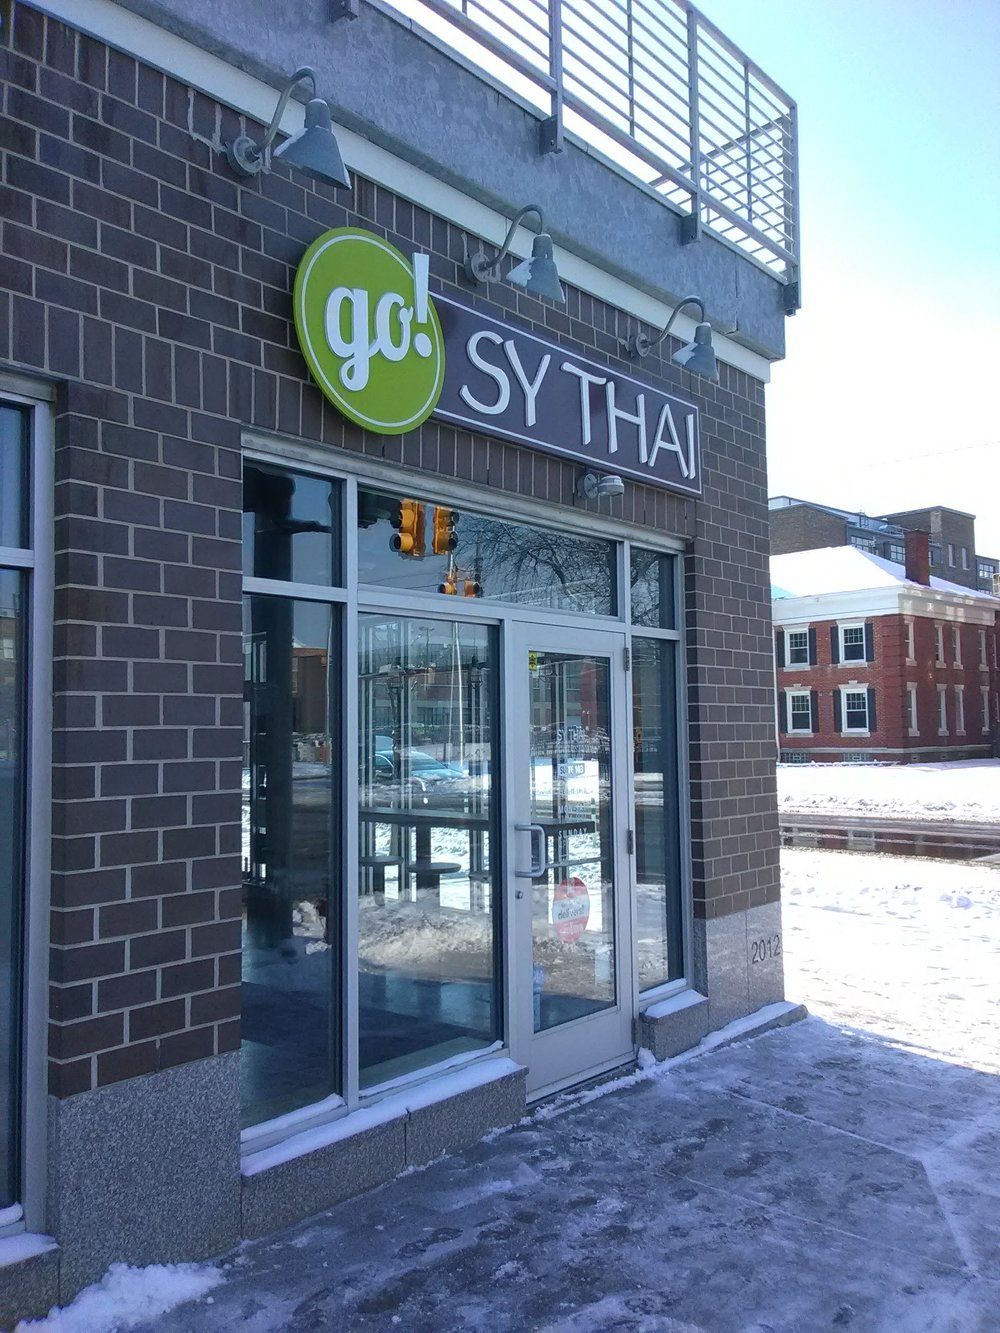 Go SY THAI MIDTOWN DETROIT at 4240 Cass Avenue